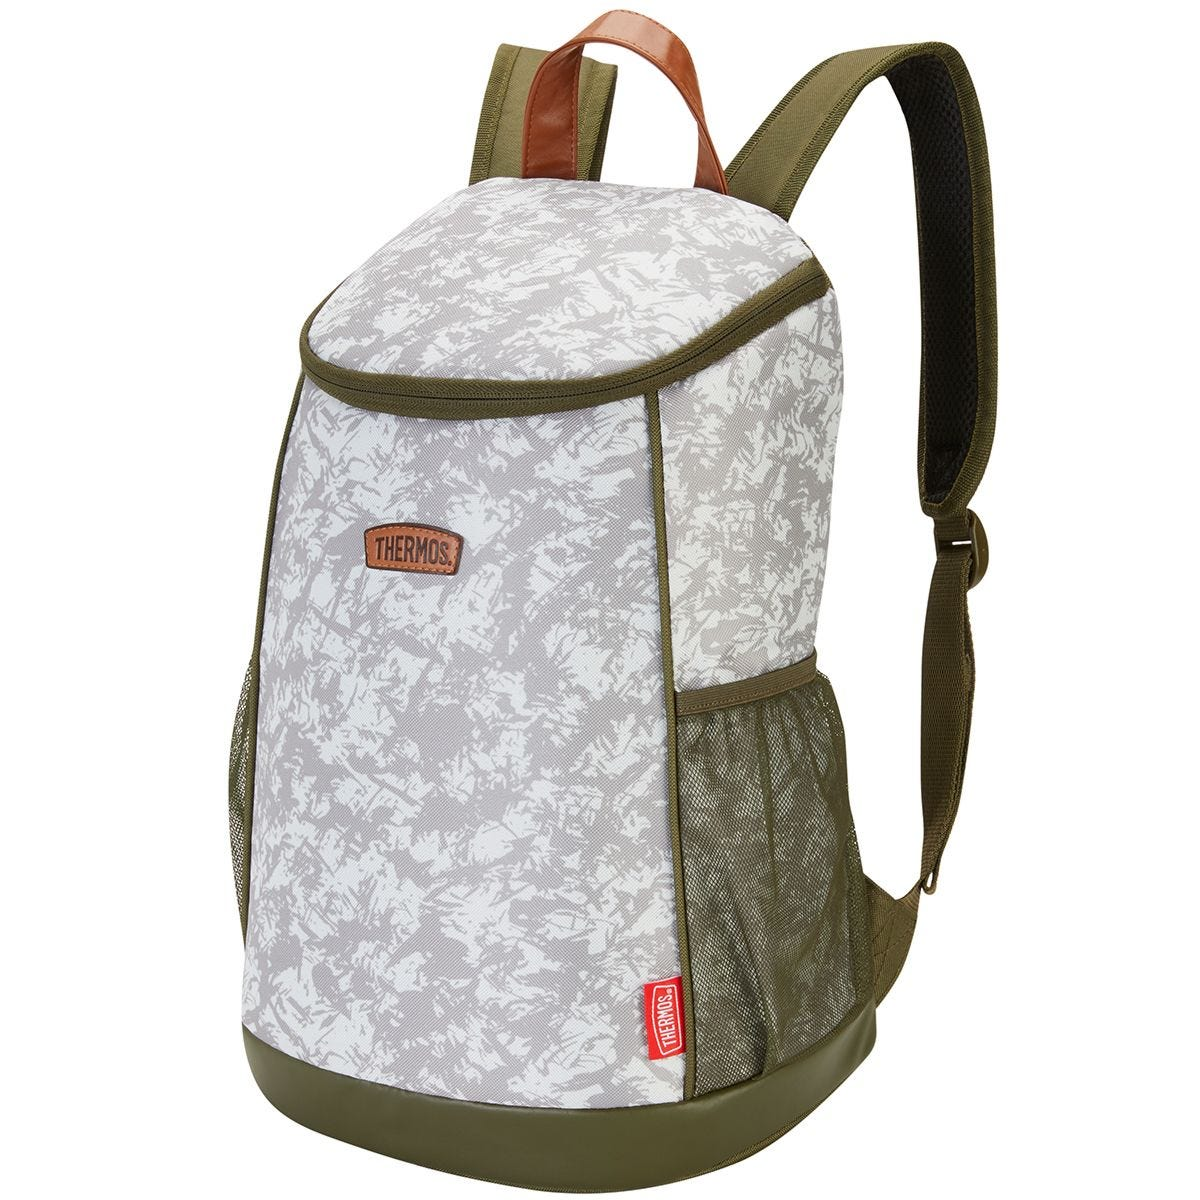 Thermos The Urban Insulated Backpack 12L - Green/Grey Camo